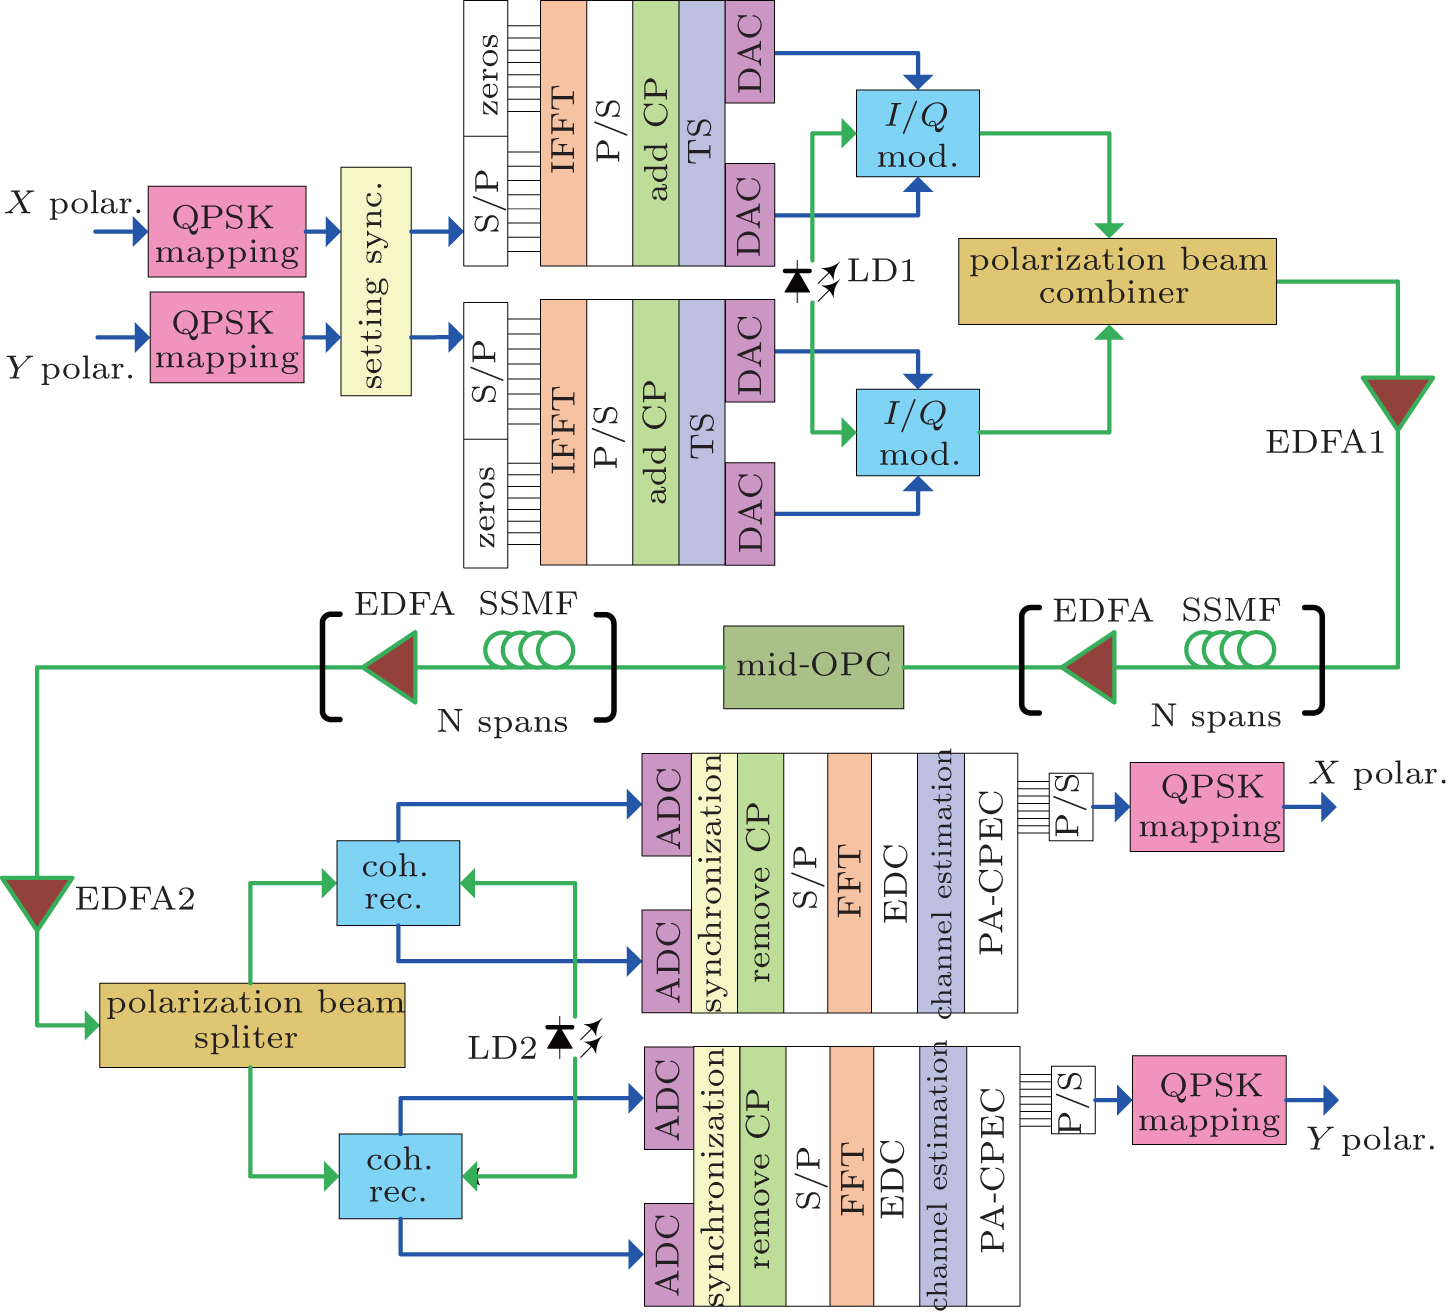 hight resolution of comparison of the compensation effects of fiber nonlinear impairments with mid span optical phase conjugation between pdm co ofdm system and pdm qpsk system